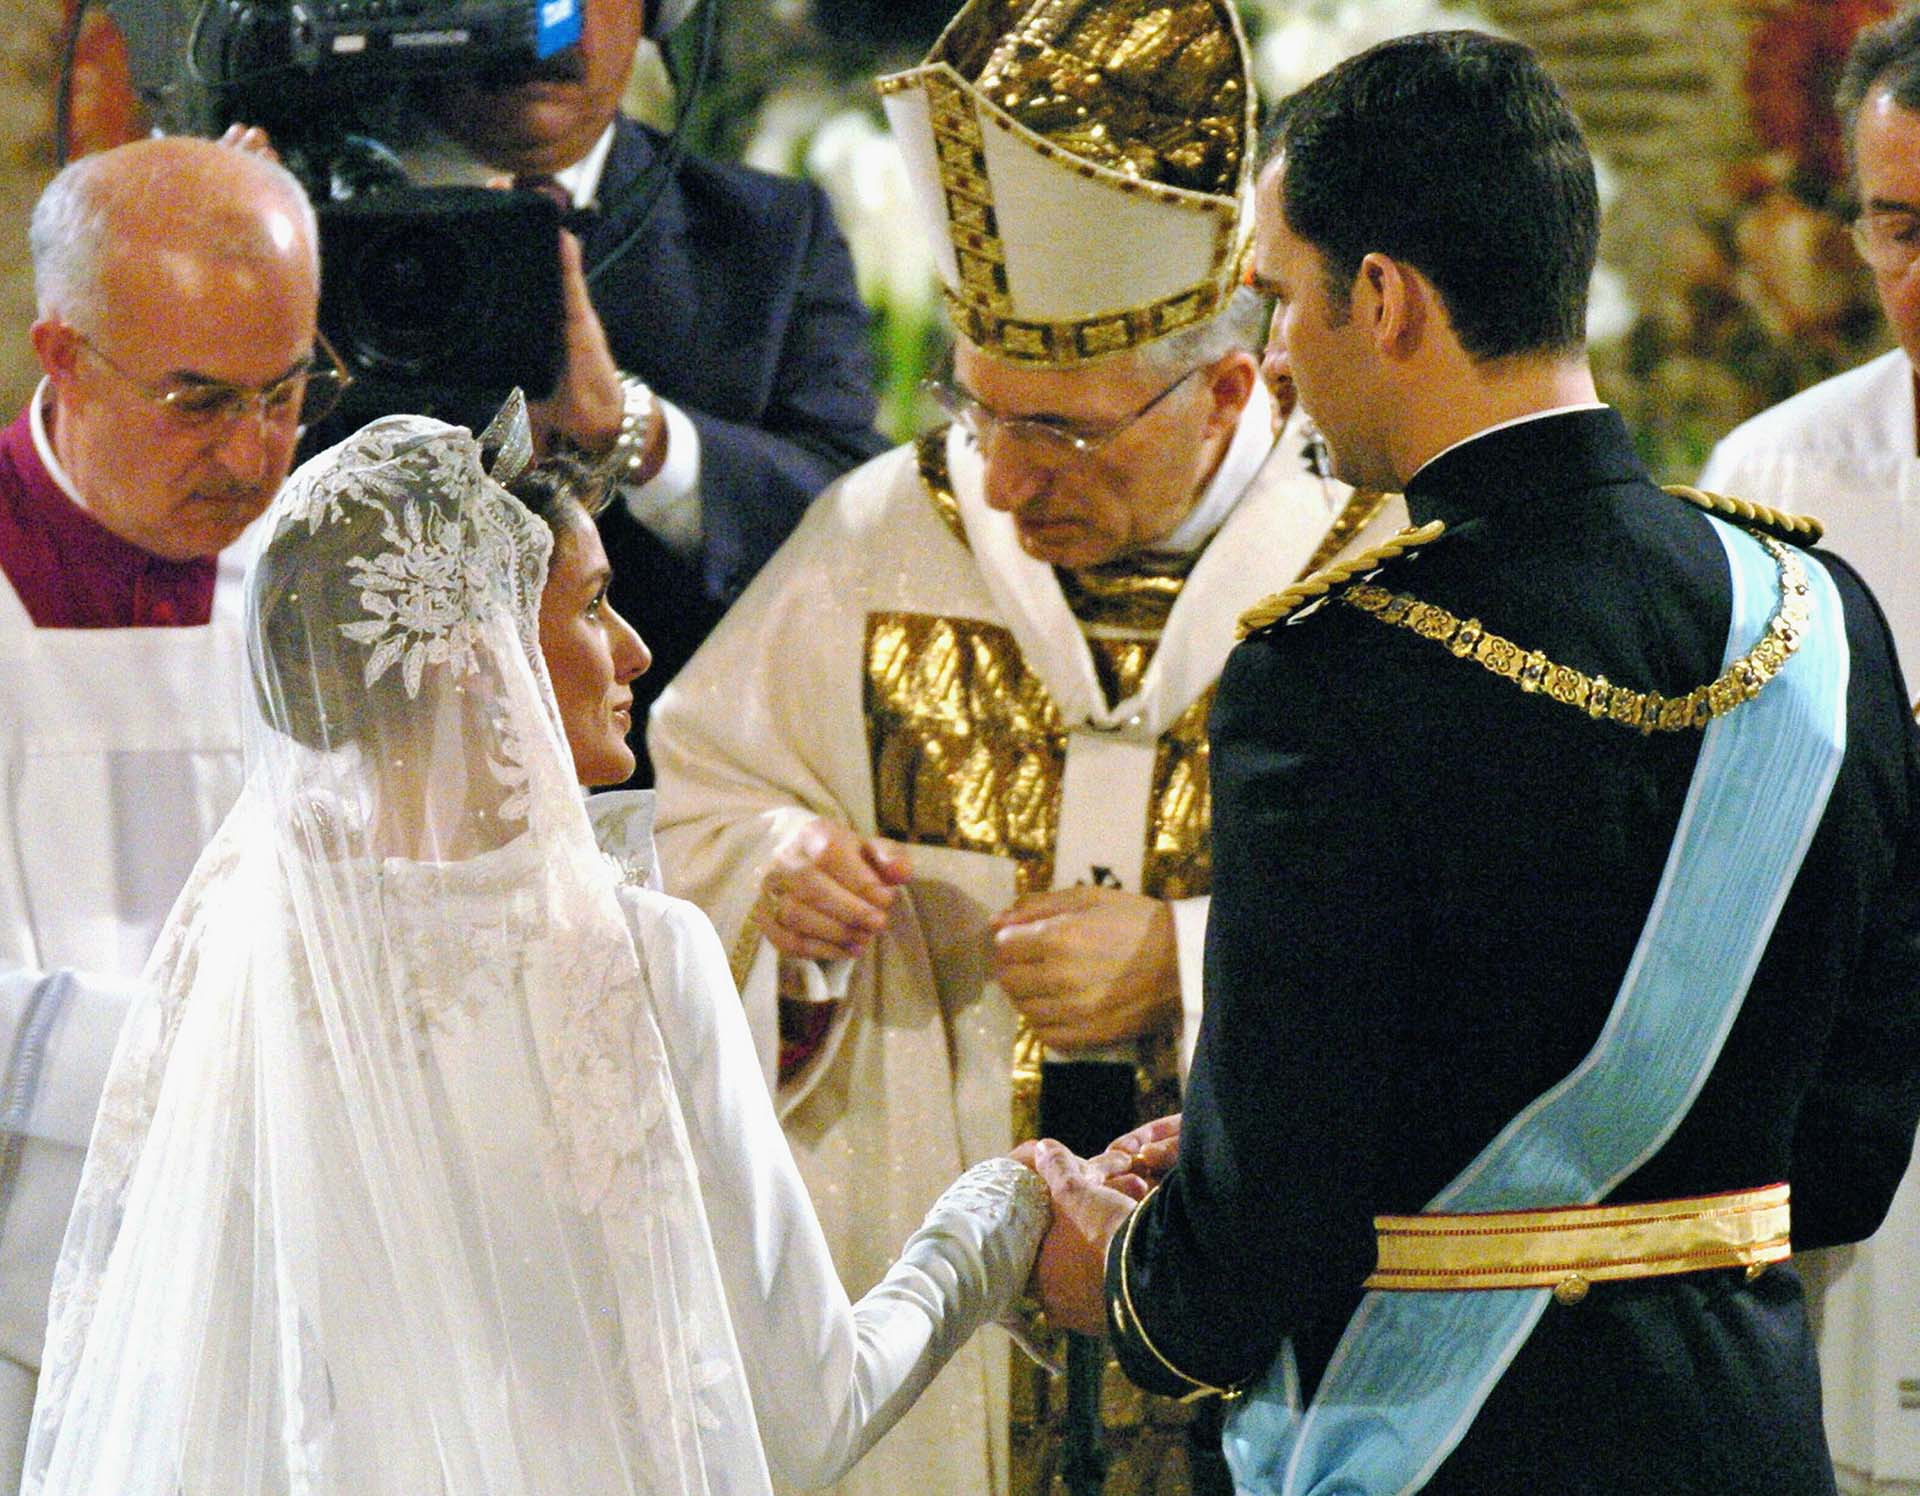 General view inside the Almudena Cathedral during the wedding of Spanish Crown Prince Felipe and Letizia Ortiz in Madrid, May 22, 2004. Felipe and former TV-anchor Ortiz wed in the first royal marriage [in Spain of a crown prince or a king in nearly a century.]